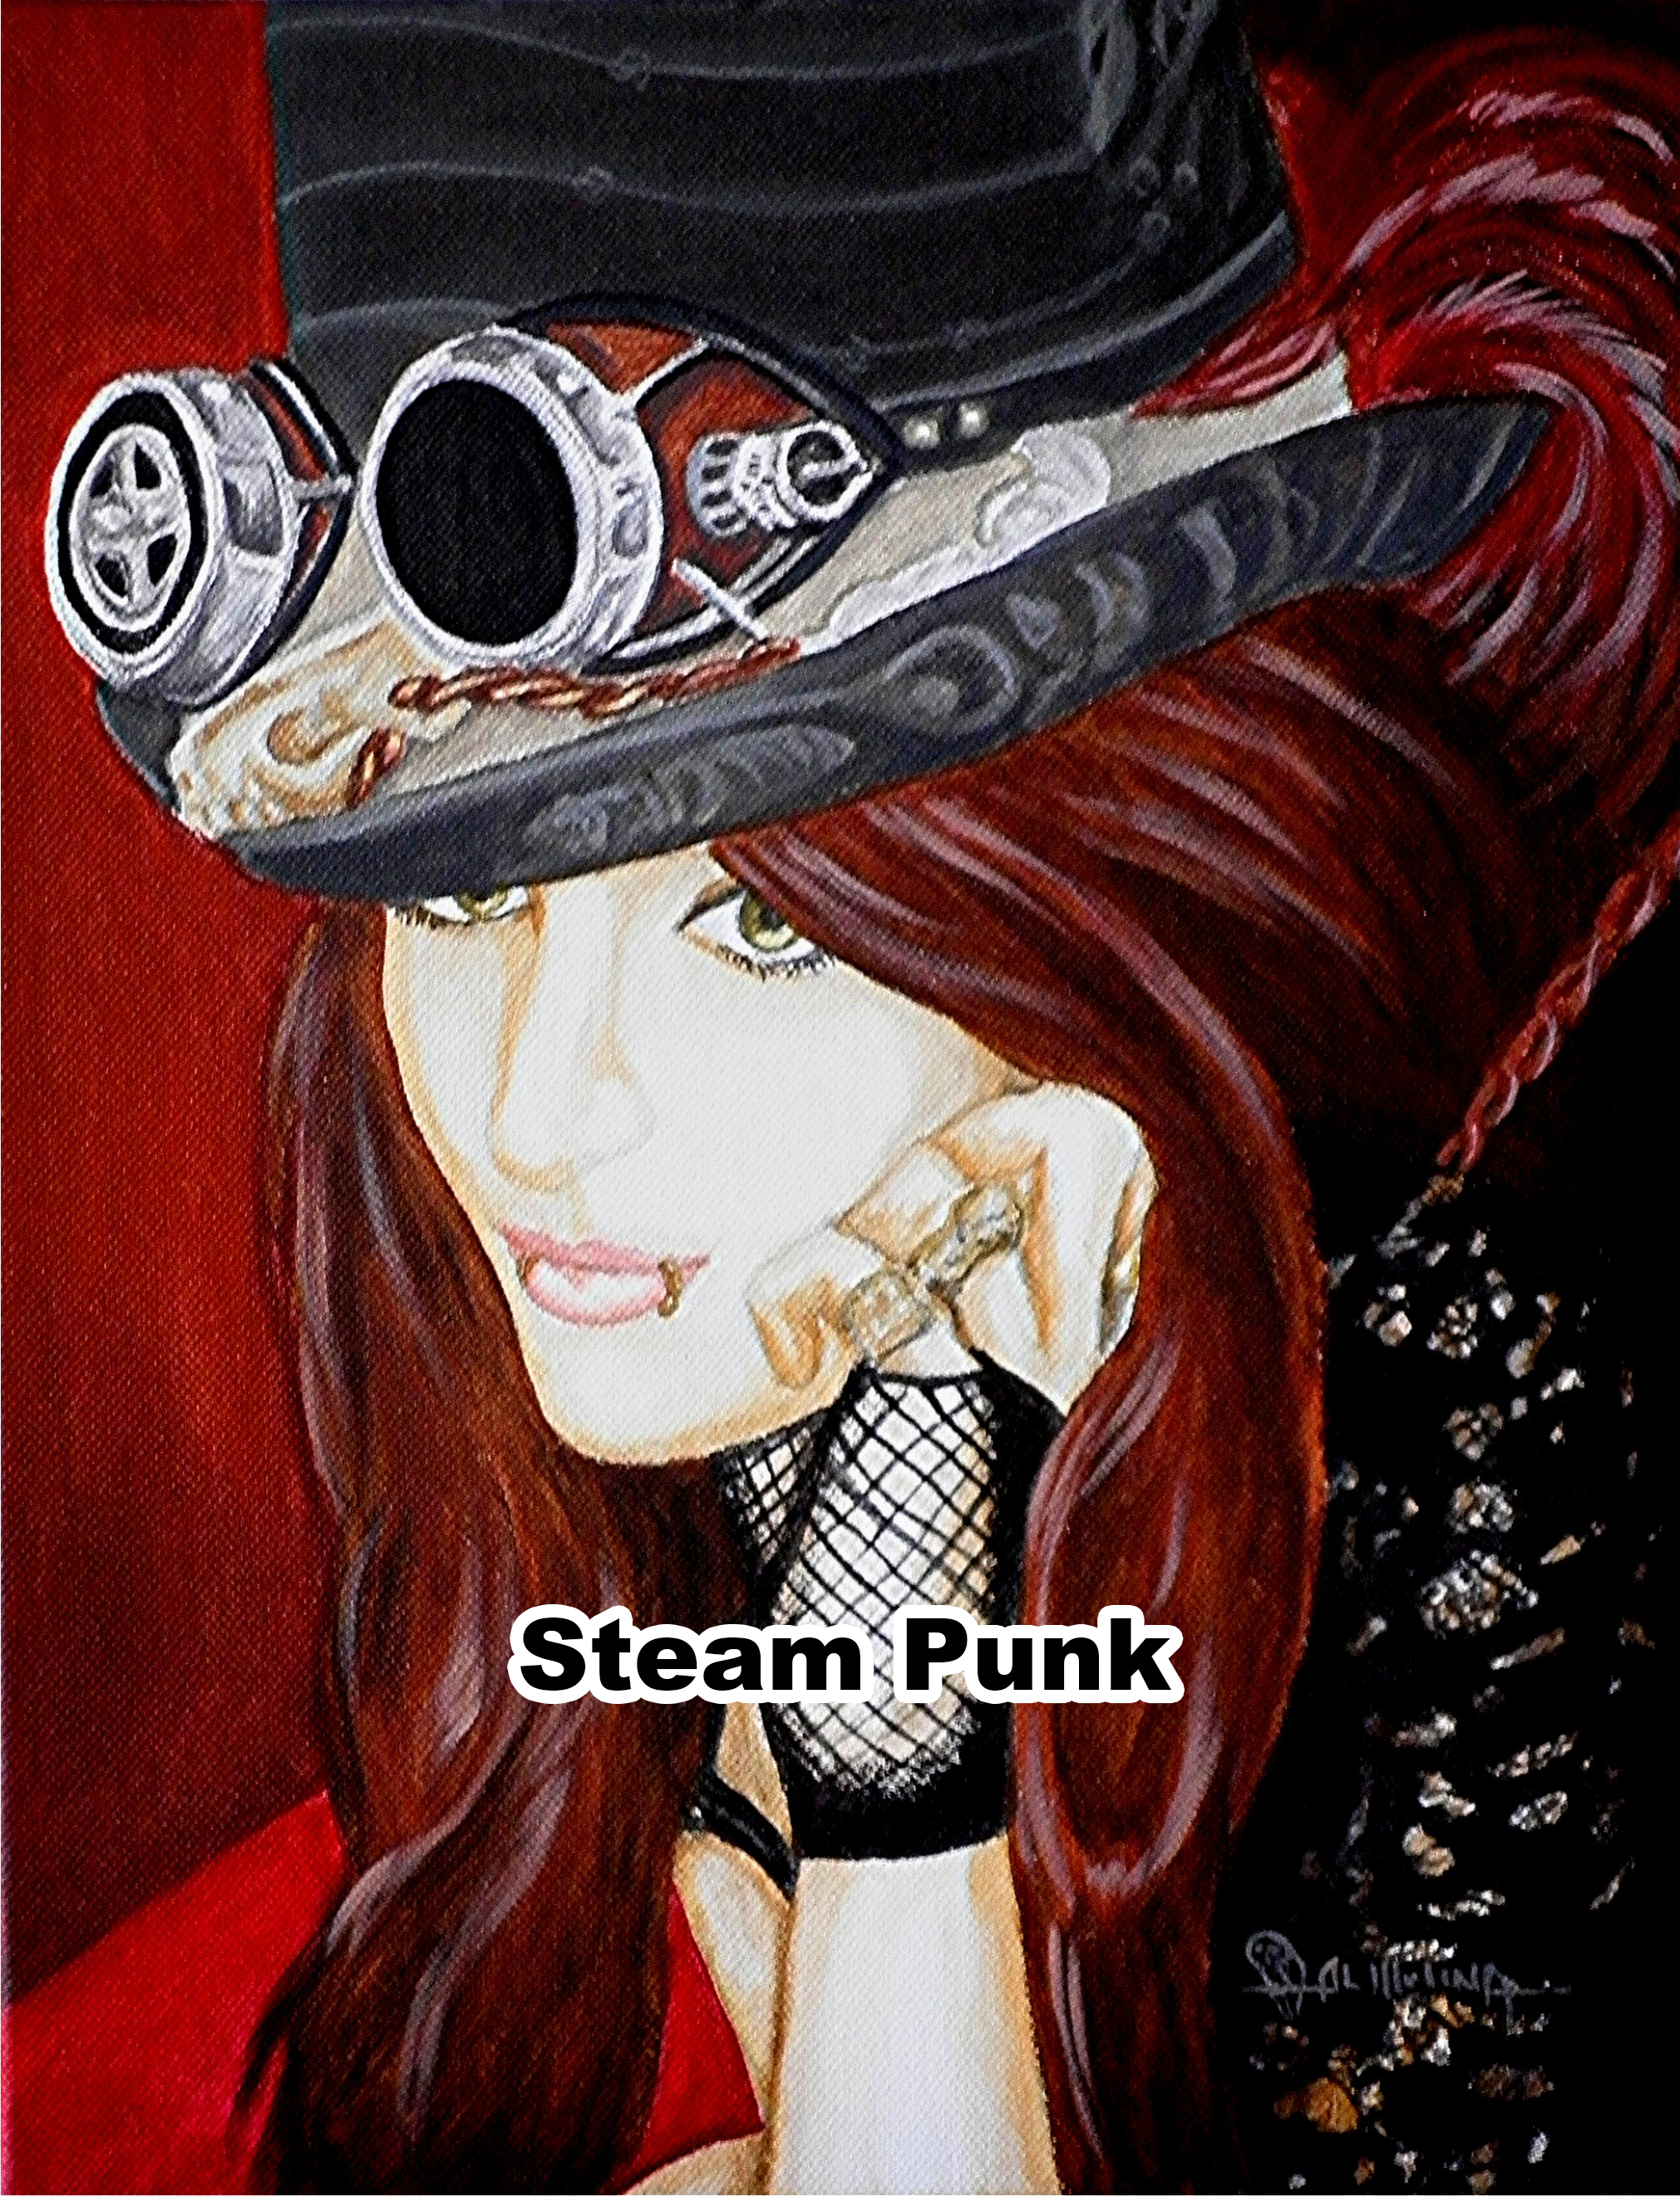 P7250759_ViewCollection_SteamPunk_2